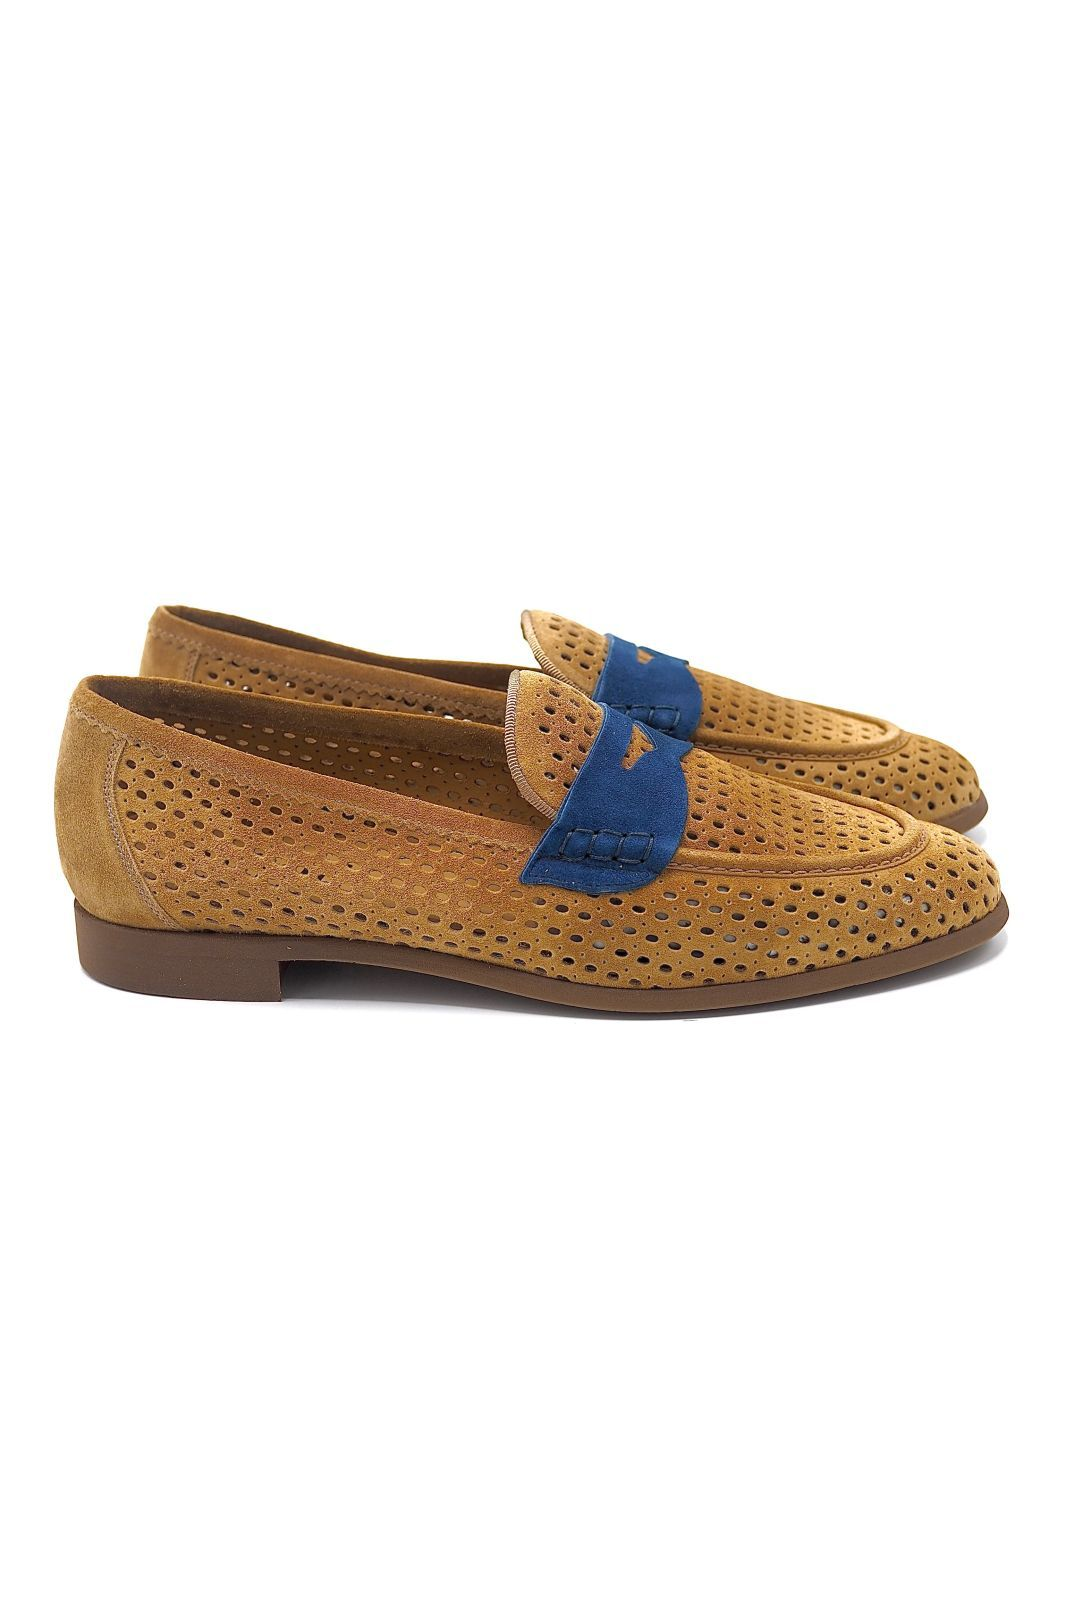 Pertini mocassin Naturel femmes (Pert-Gucci - 17011 Gucci nub. perfo camel/b) - Marine | Much more than shoes